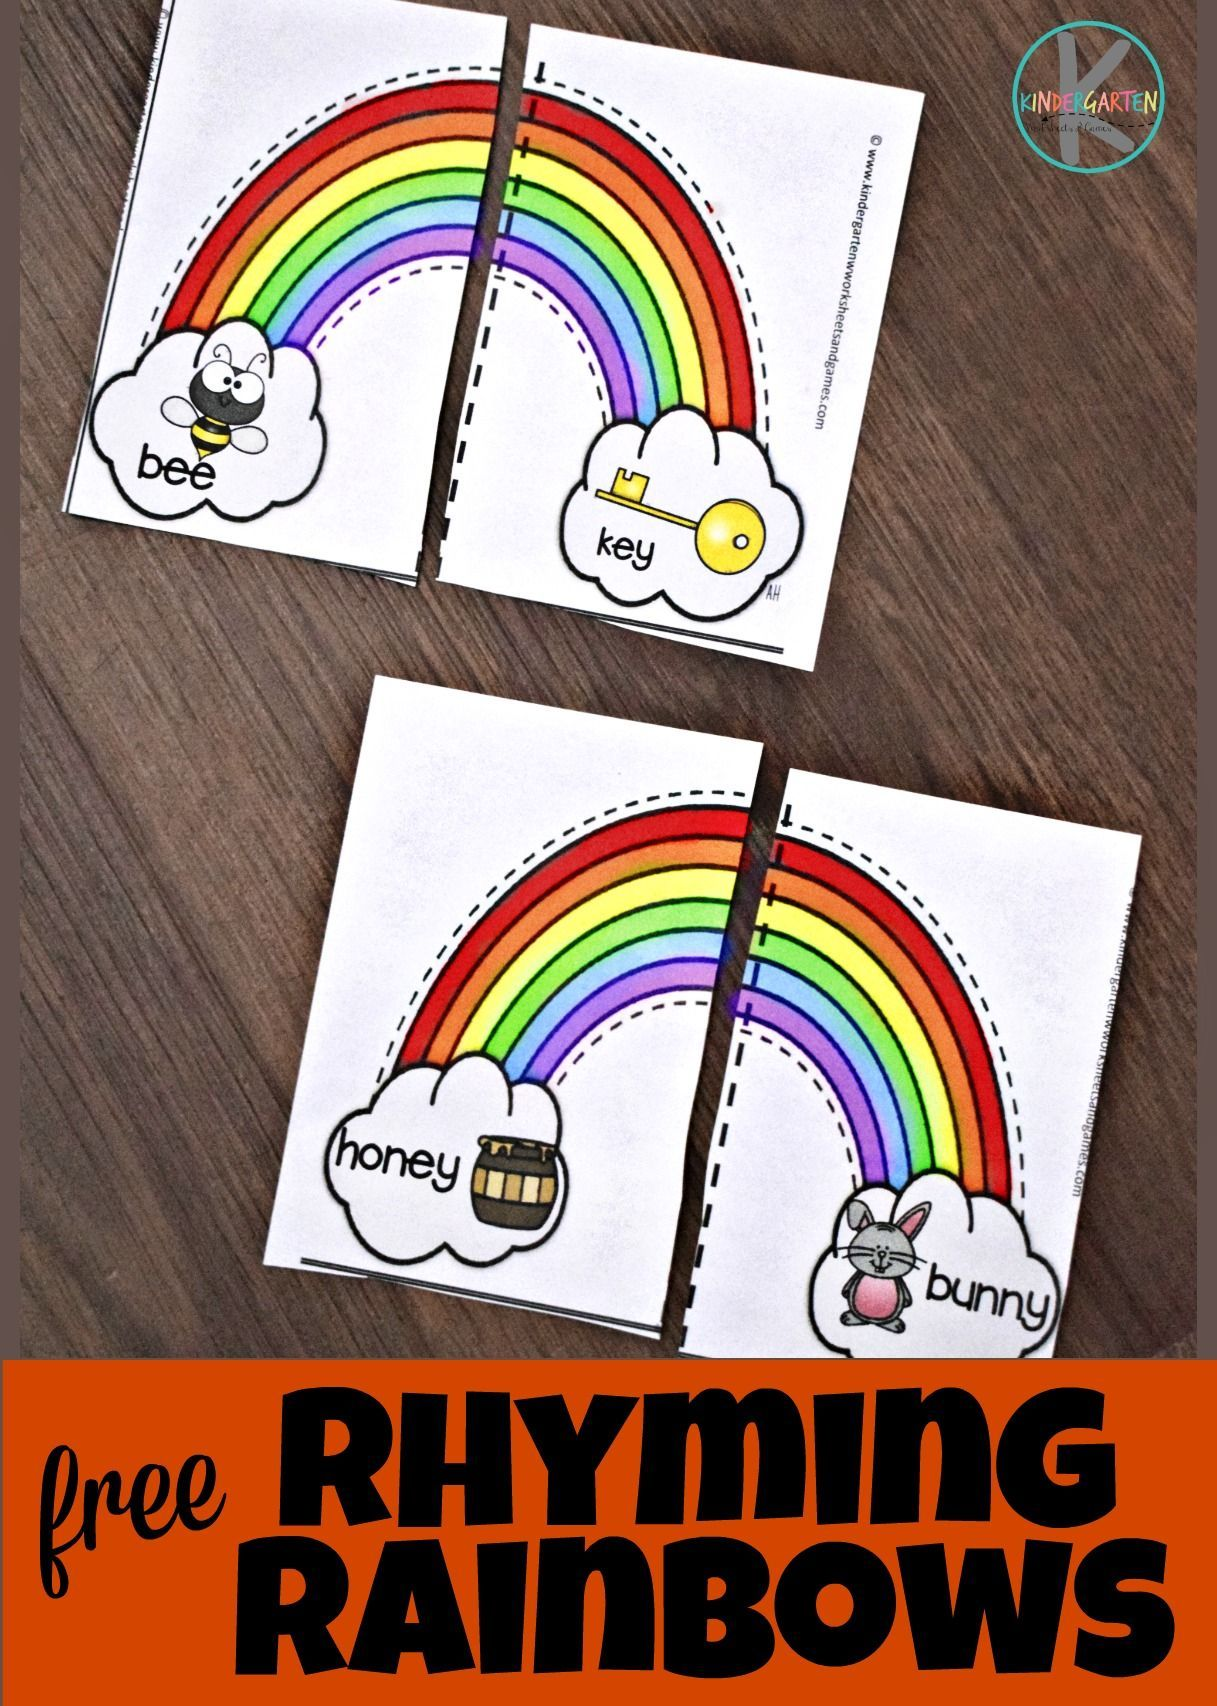 Free Rhyming Rainbows